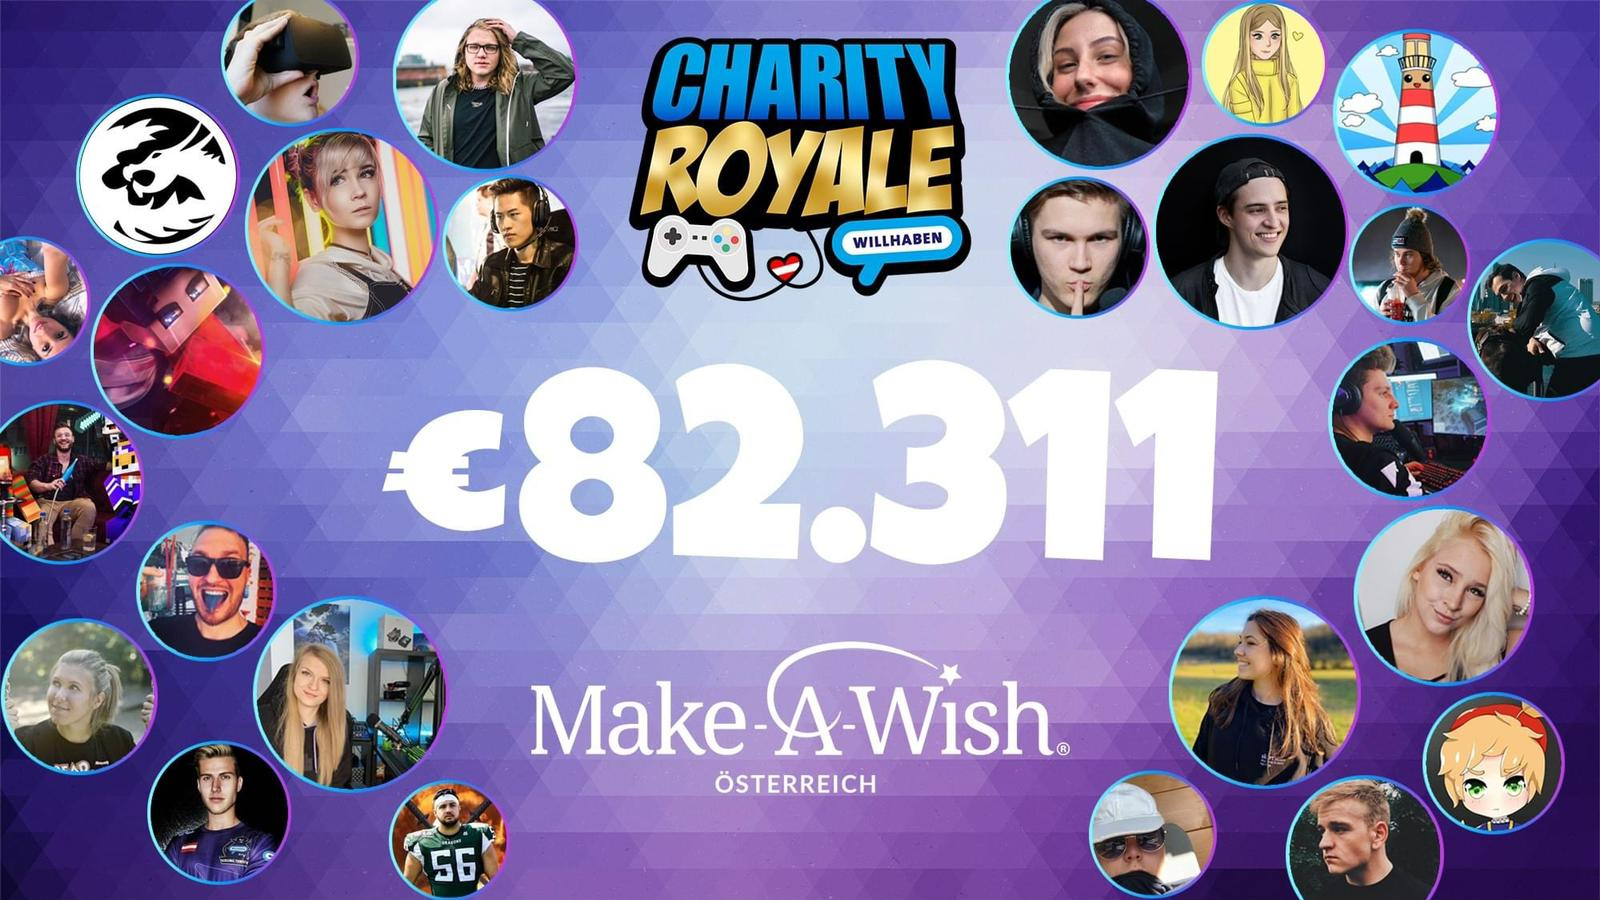 Charity Royal Gaming Event